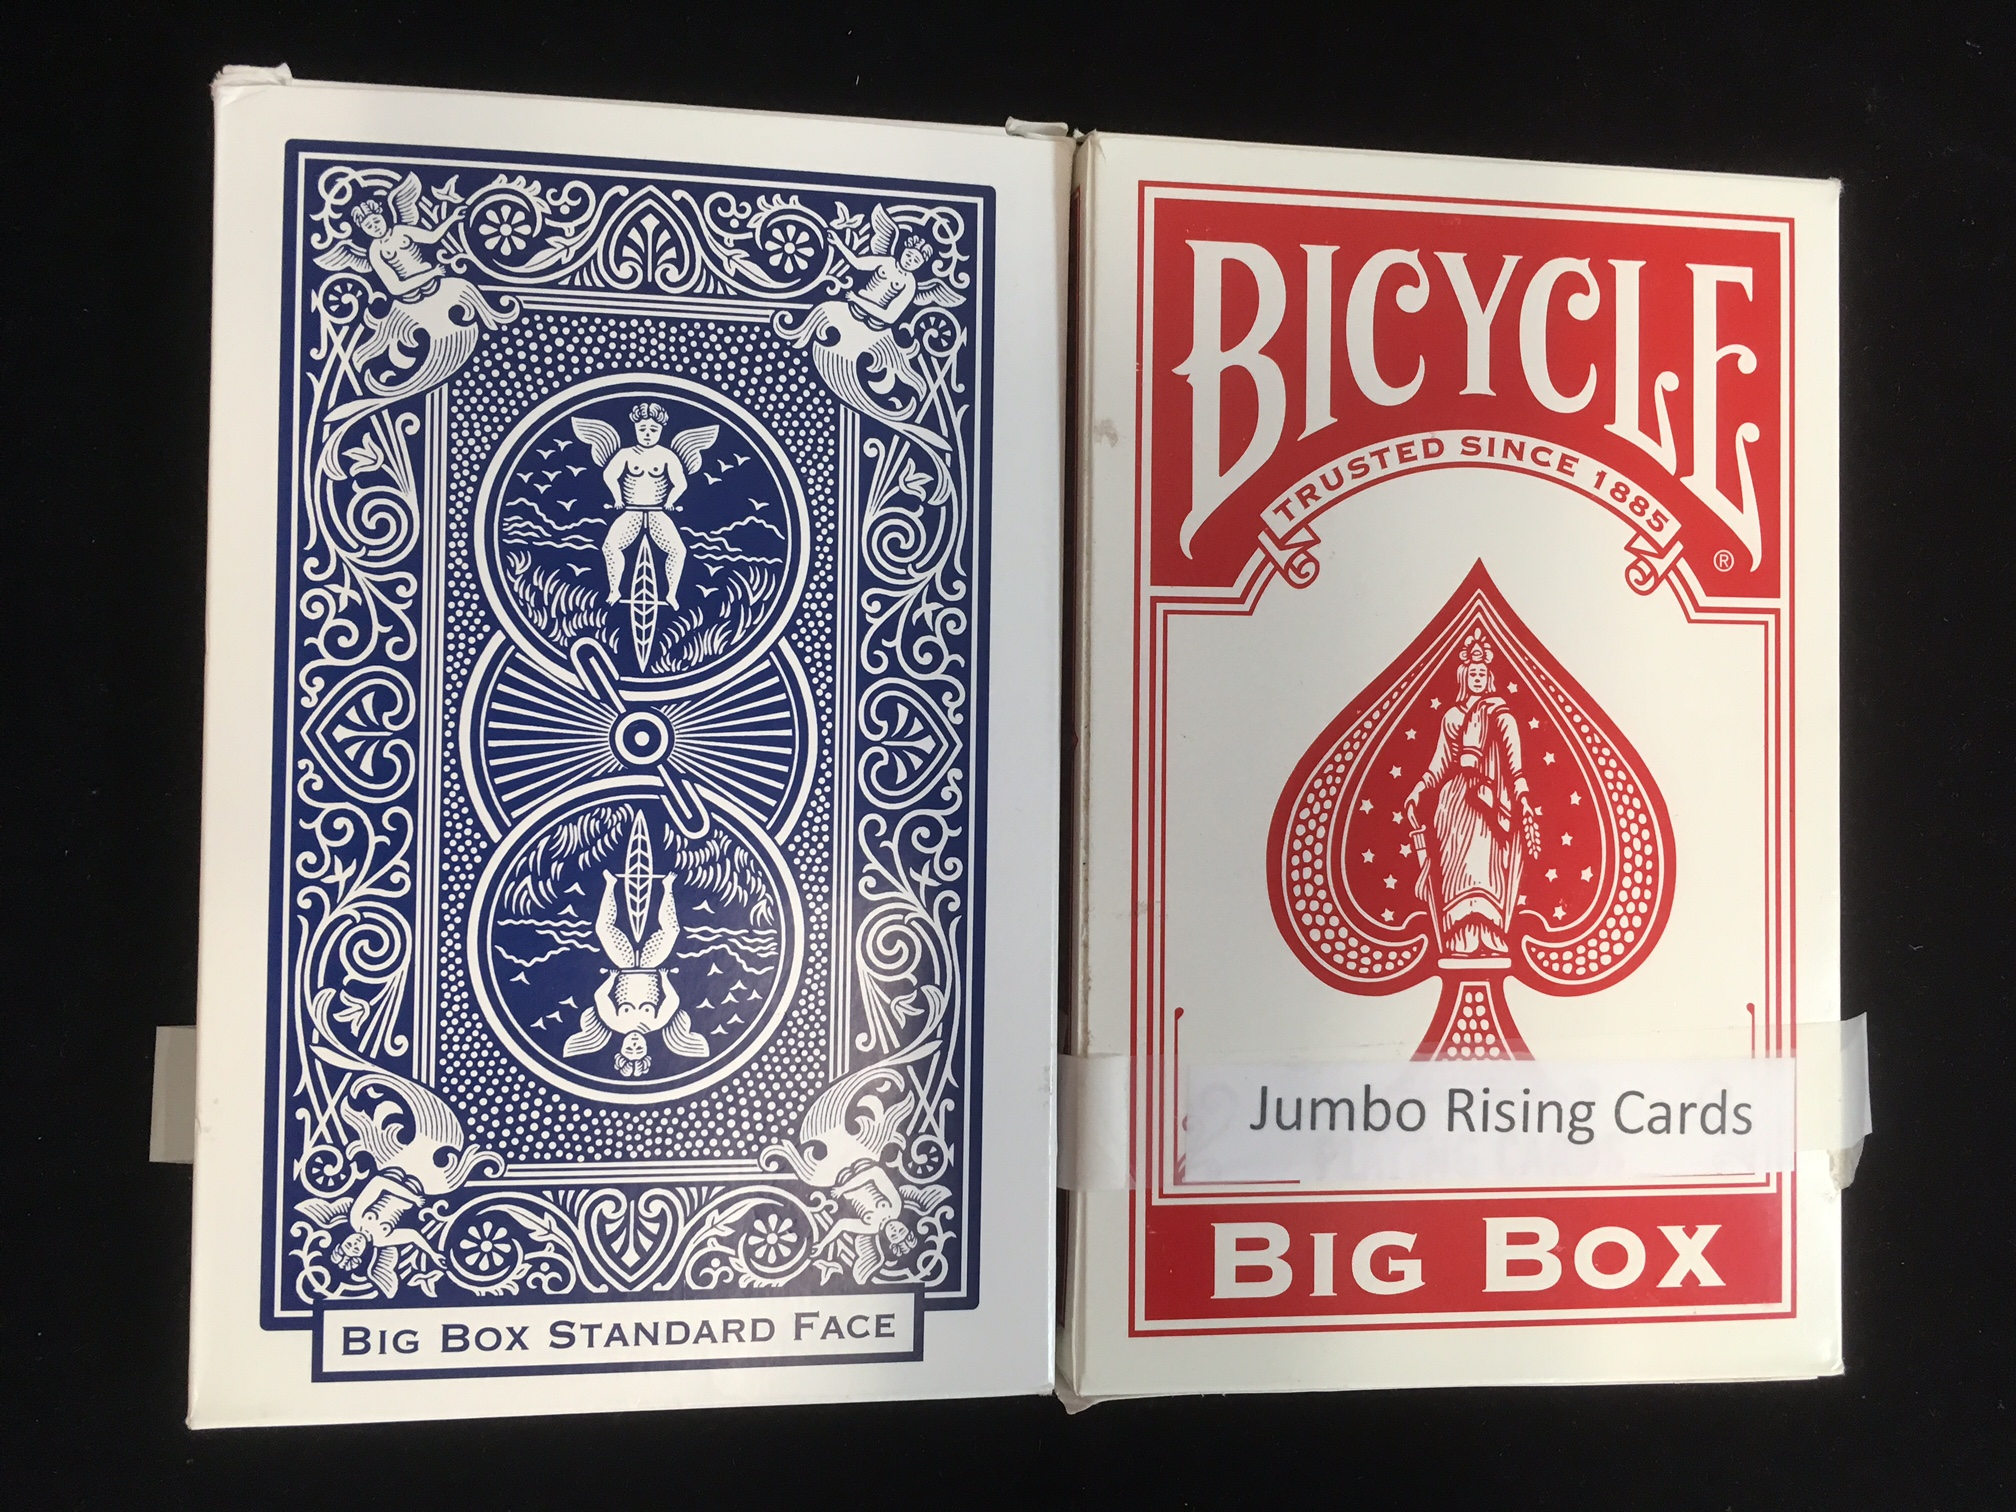 Rising Card Jumbo Bicycle Stage Size